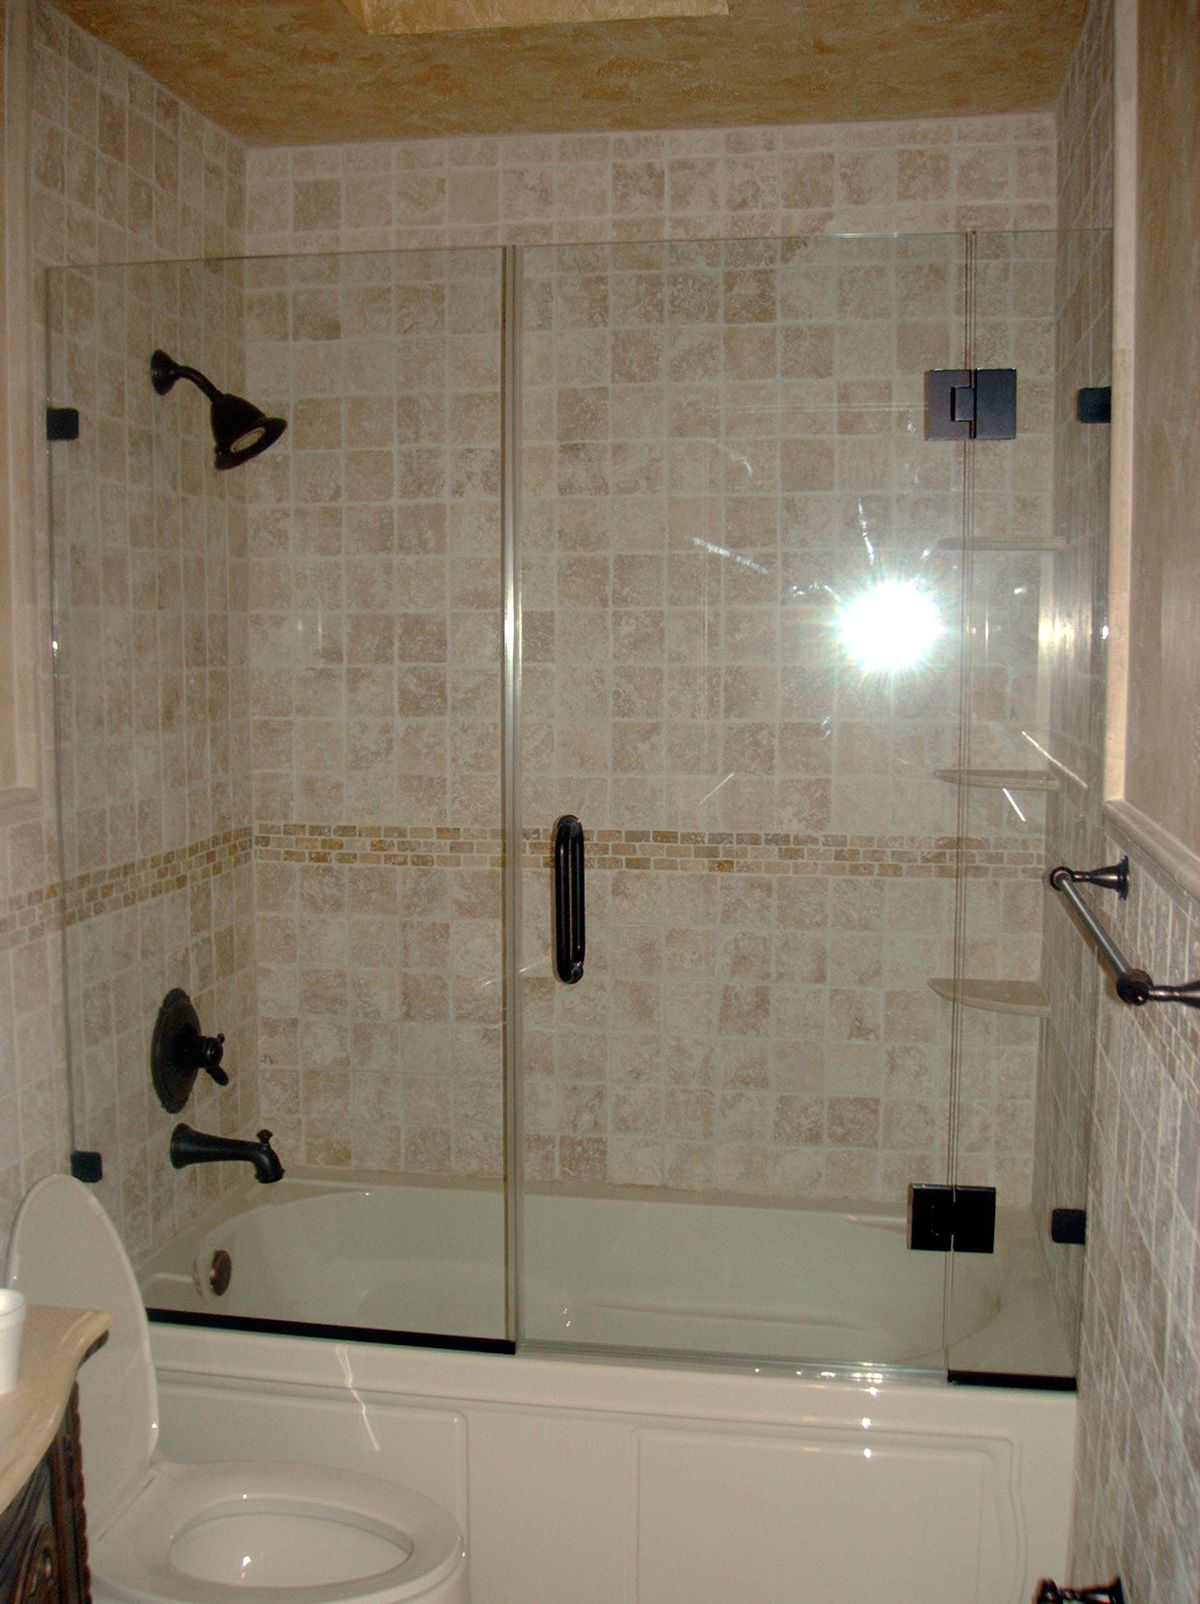 Bathroom shower doors frameless - Best Remodel For Tub Shower Enclosure Glass Tub Enclosures Frameless Tub Doors Bathtub